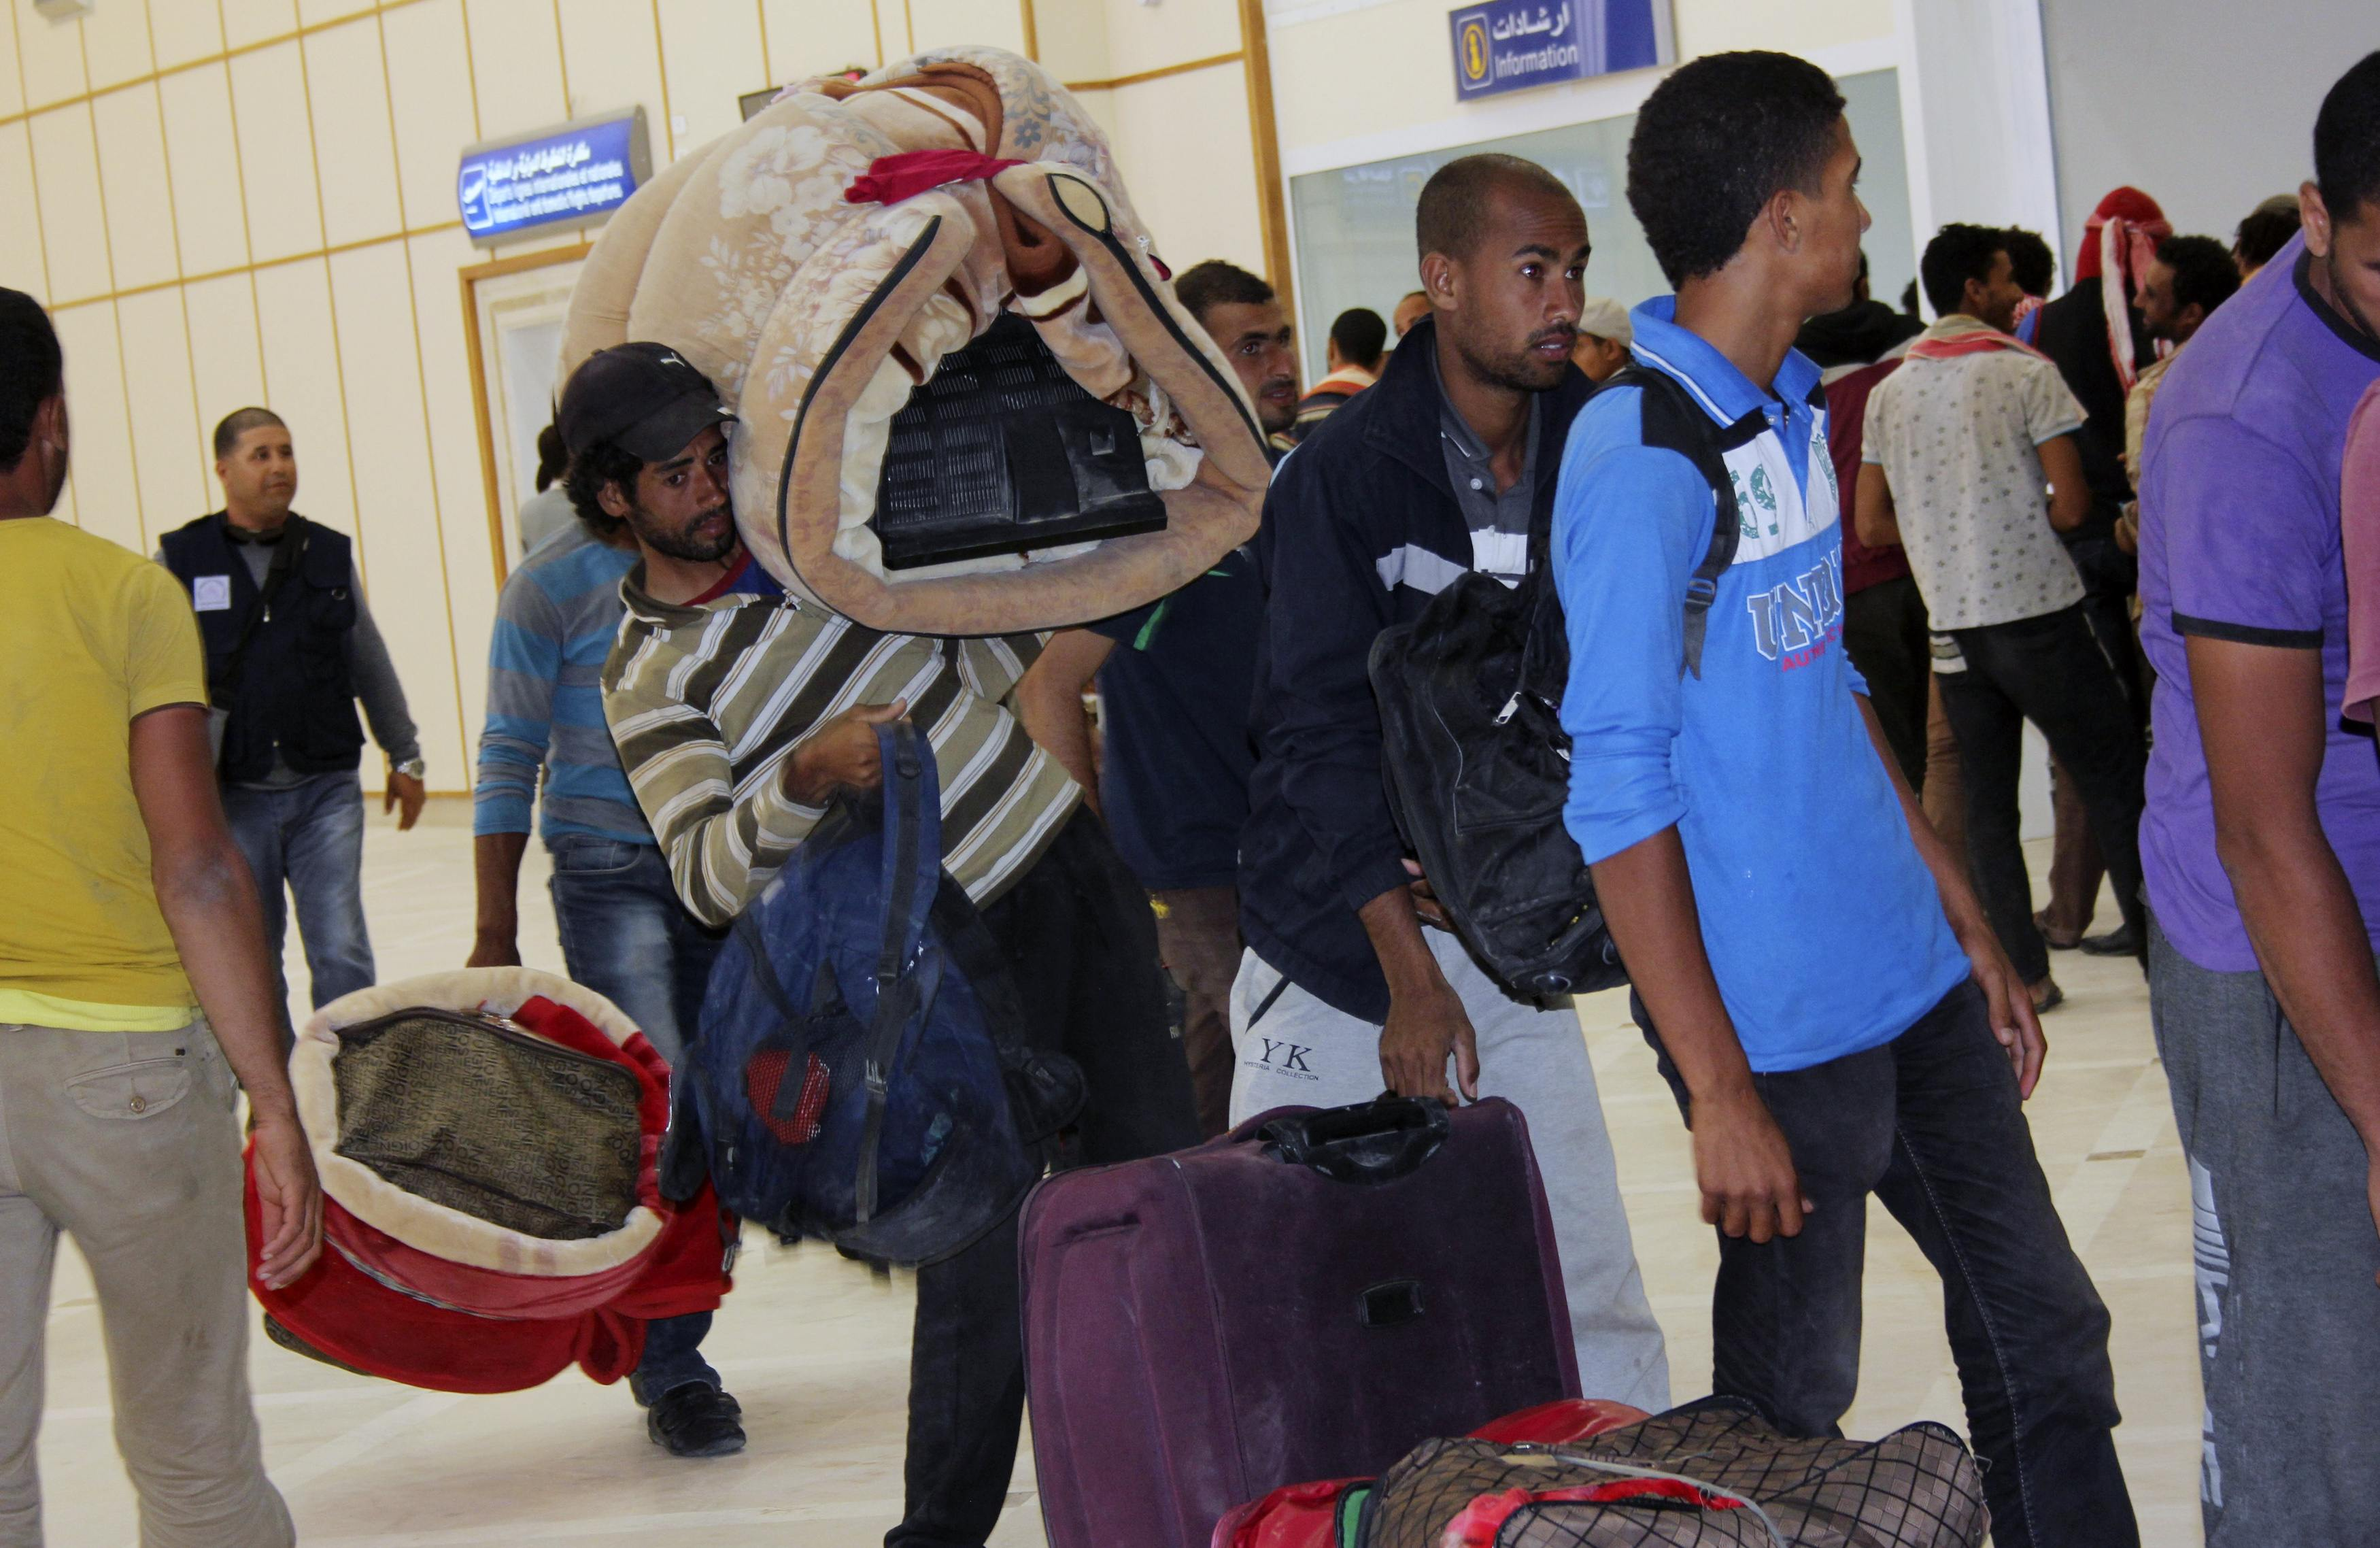 Egyptian men wait to board their plane to return home, at the Gabes Matmata airport, south of Tunisia